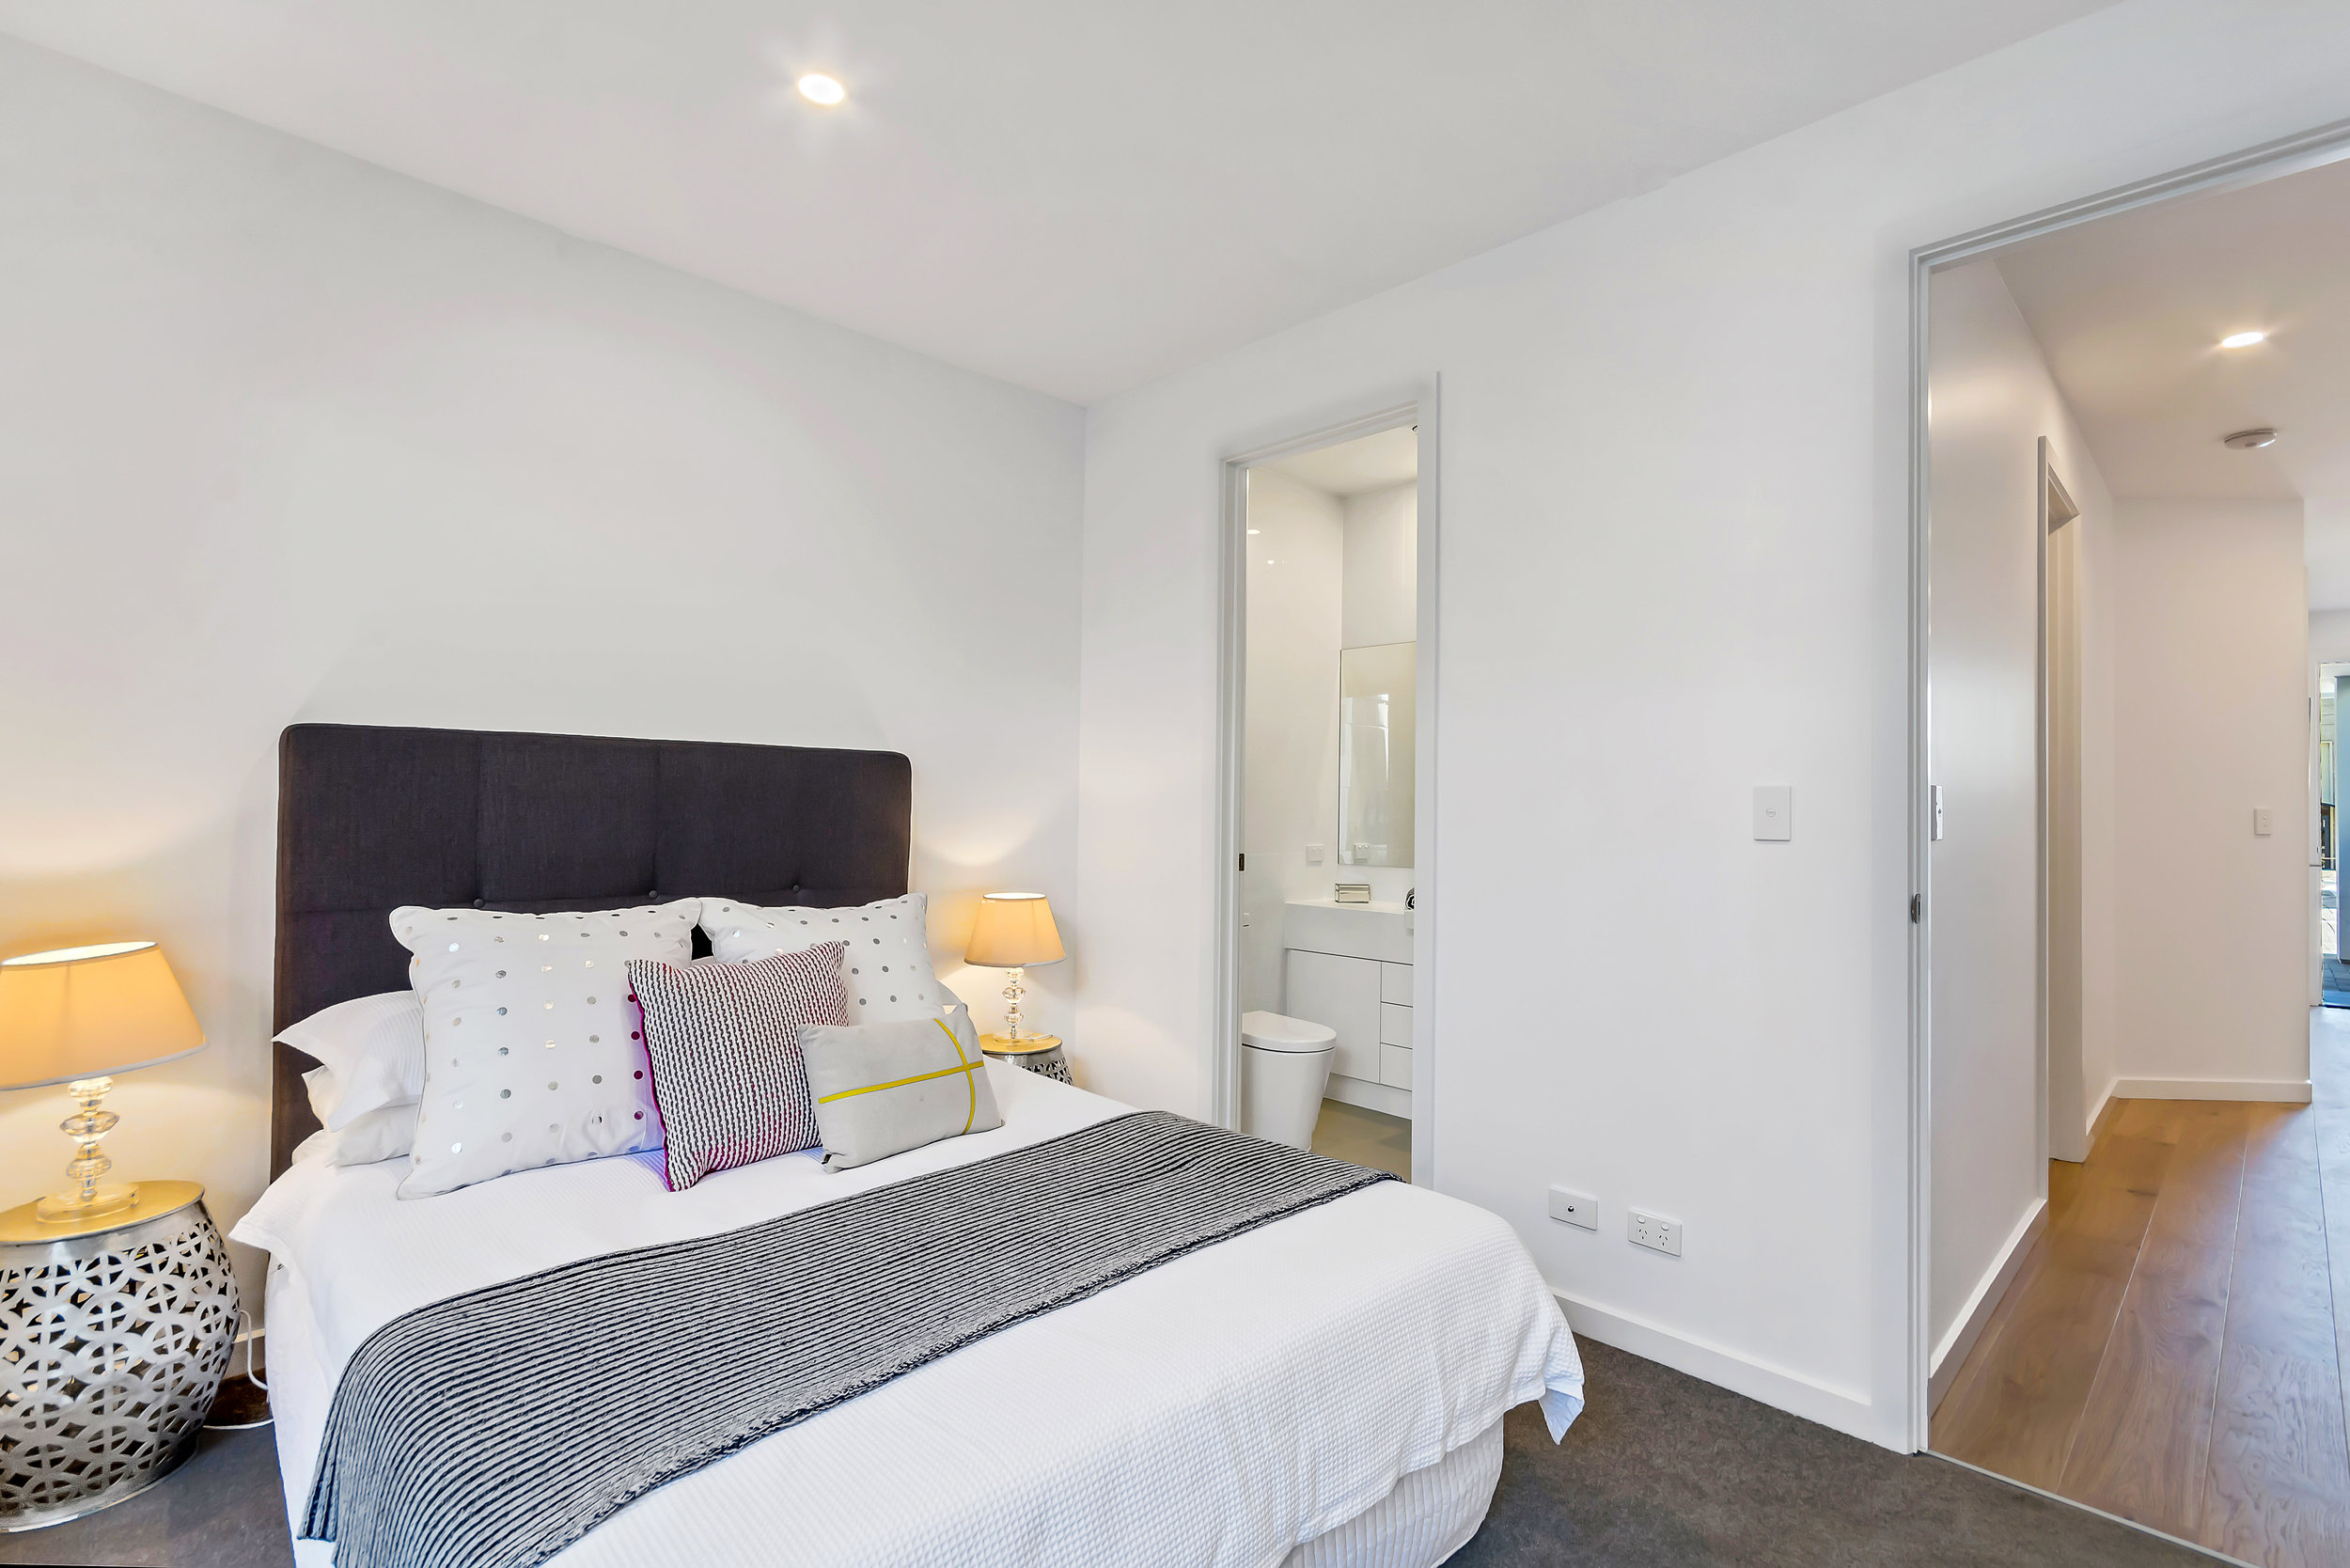 Bedroom 1 with floor to ceiling built-in robes, ensuite complete with Caesar stone and 2-pac vanity, opening to own private courtyard.